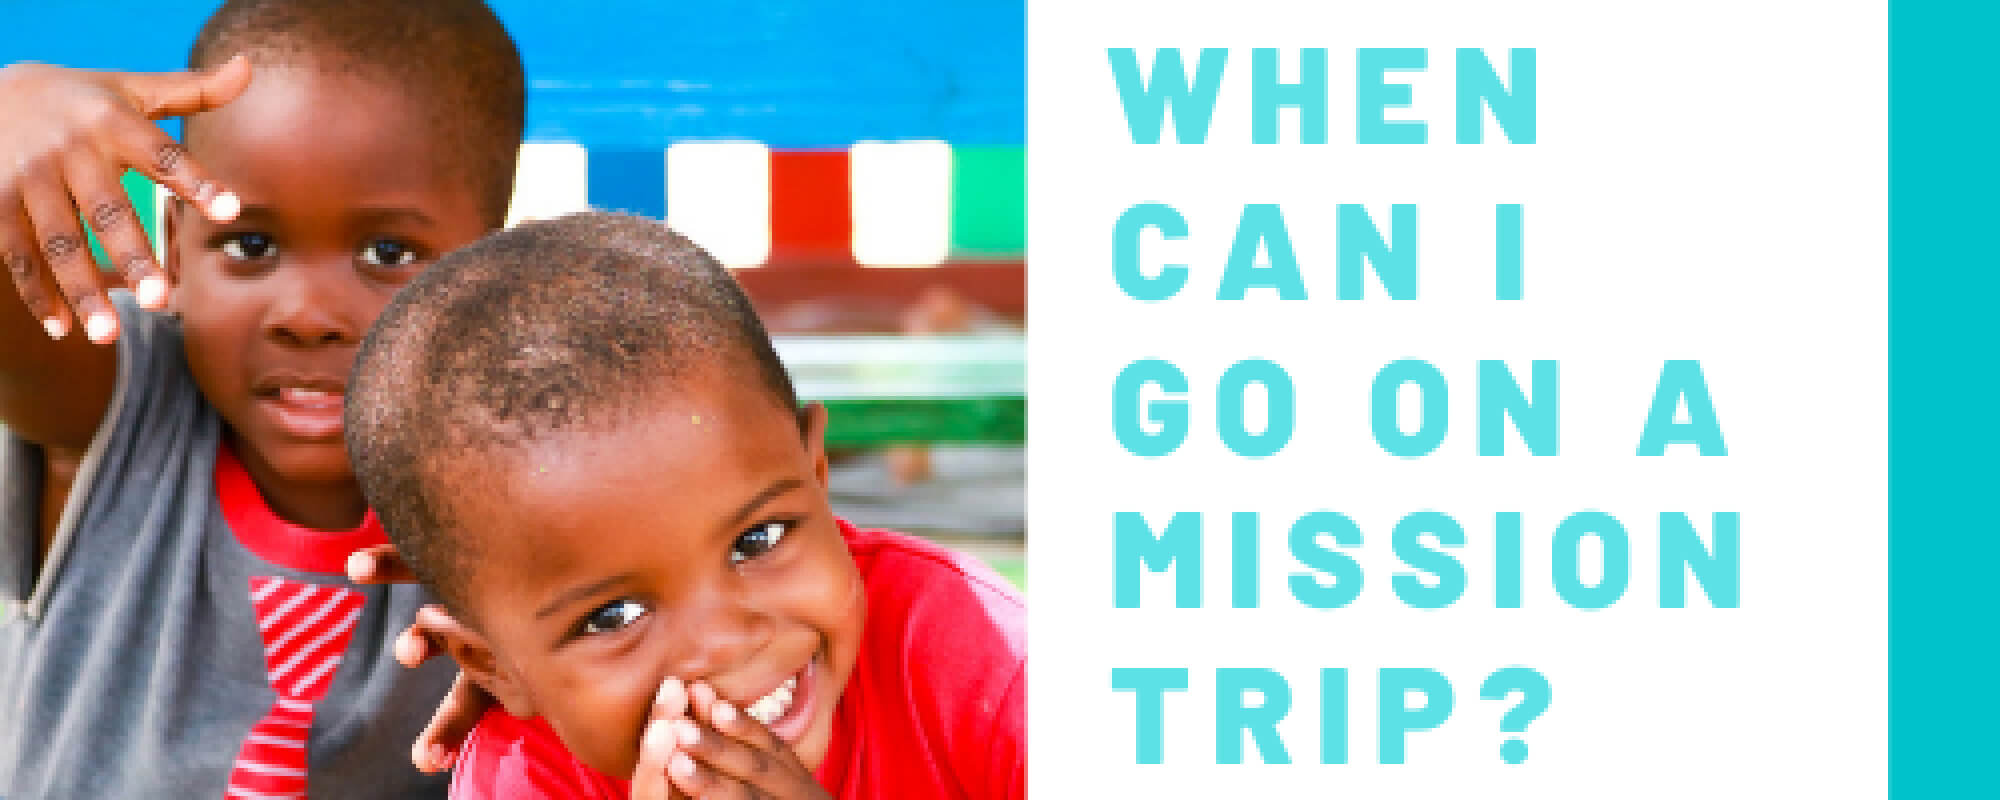 When can I go on a mission trip?